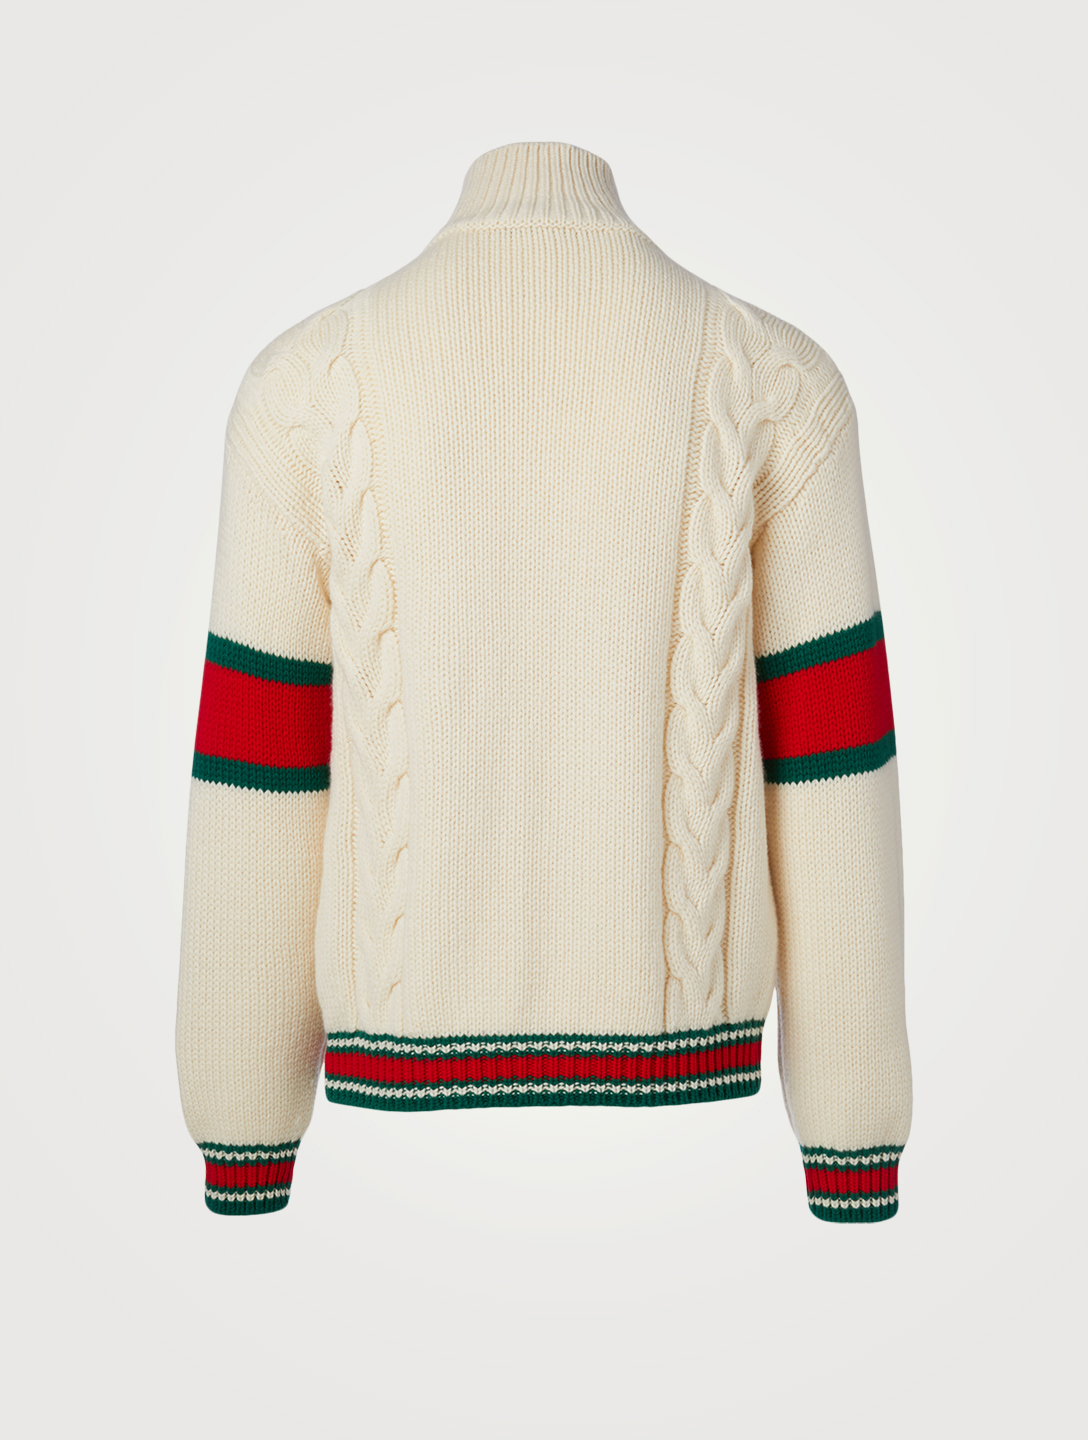 GUCCI Wool Cable Knit Jacket Men's White